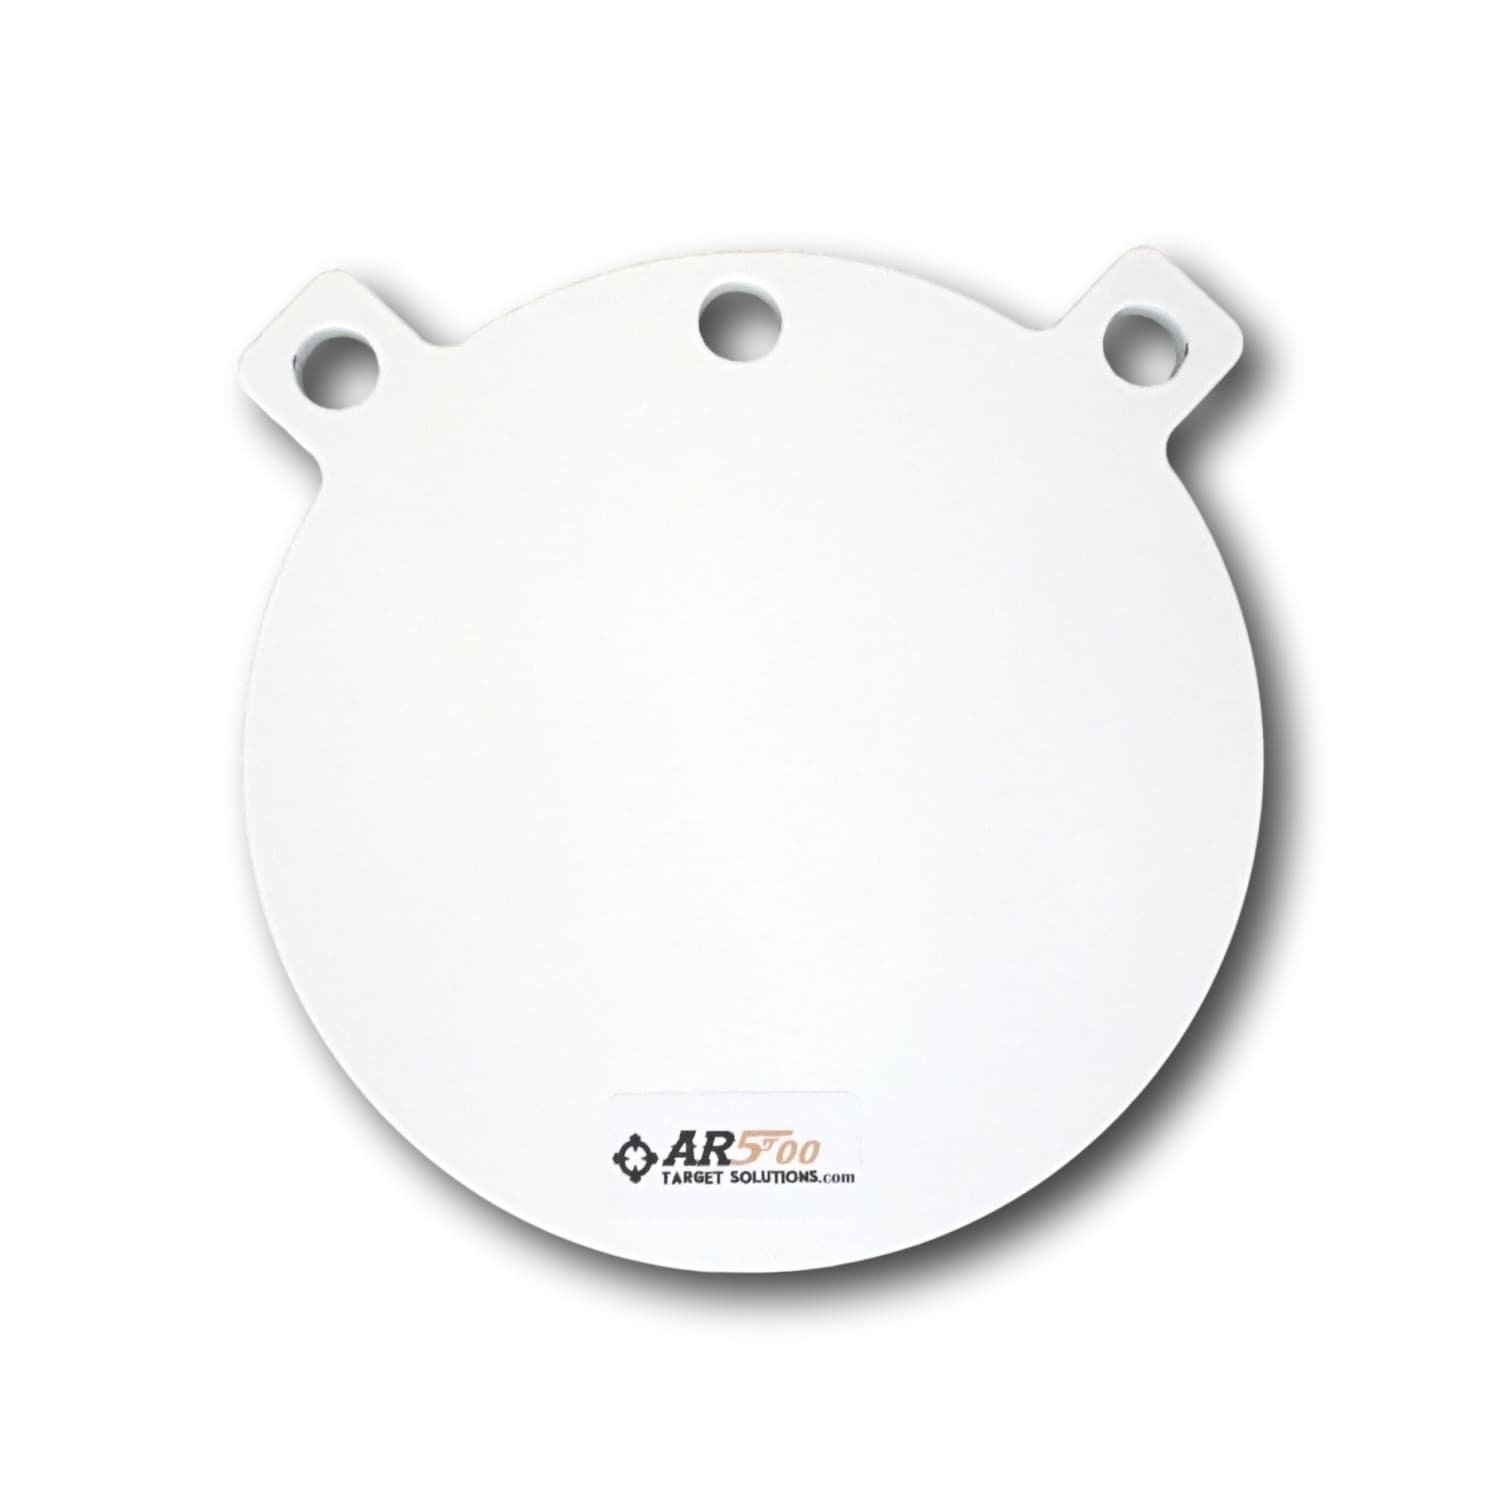 Ar500 Target Solutions- Quality 3/8, 1/2 Thick AR500 Steel Targets- Laser Cut Powder Coated Made in USA (6'', 1/2)